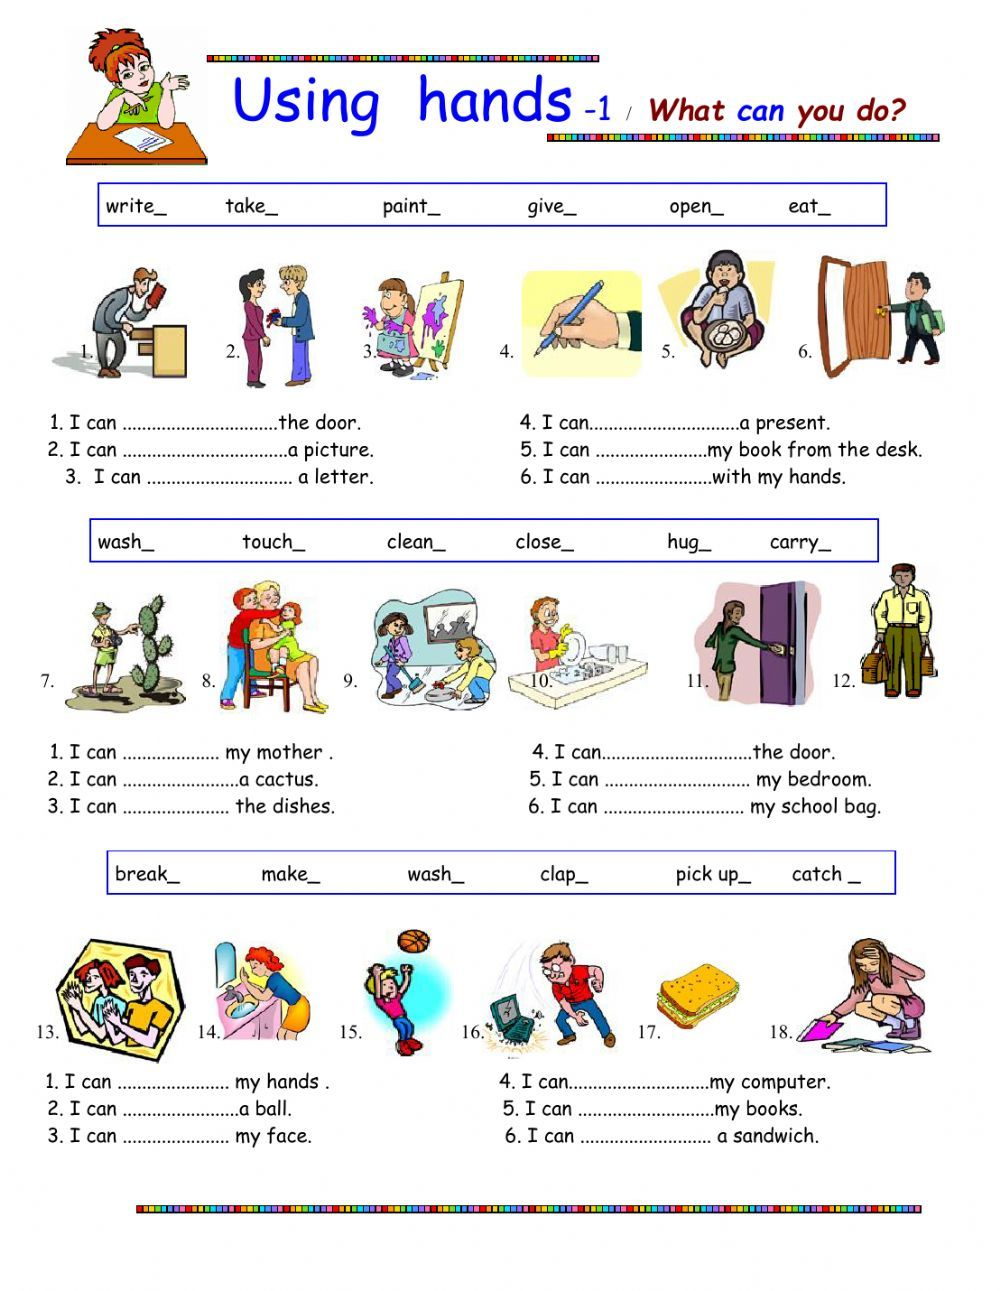 Modal verbs interactive and downloadable worksheet. Check